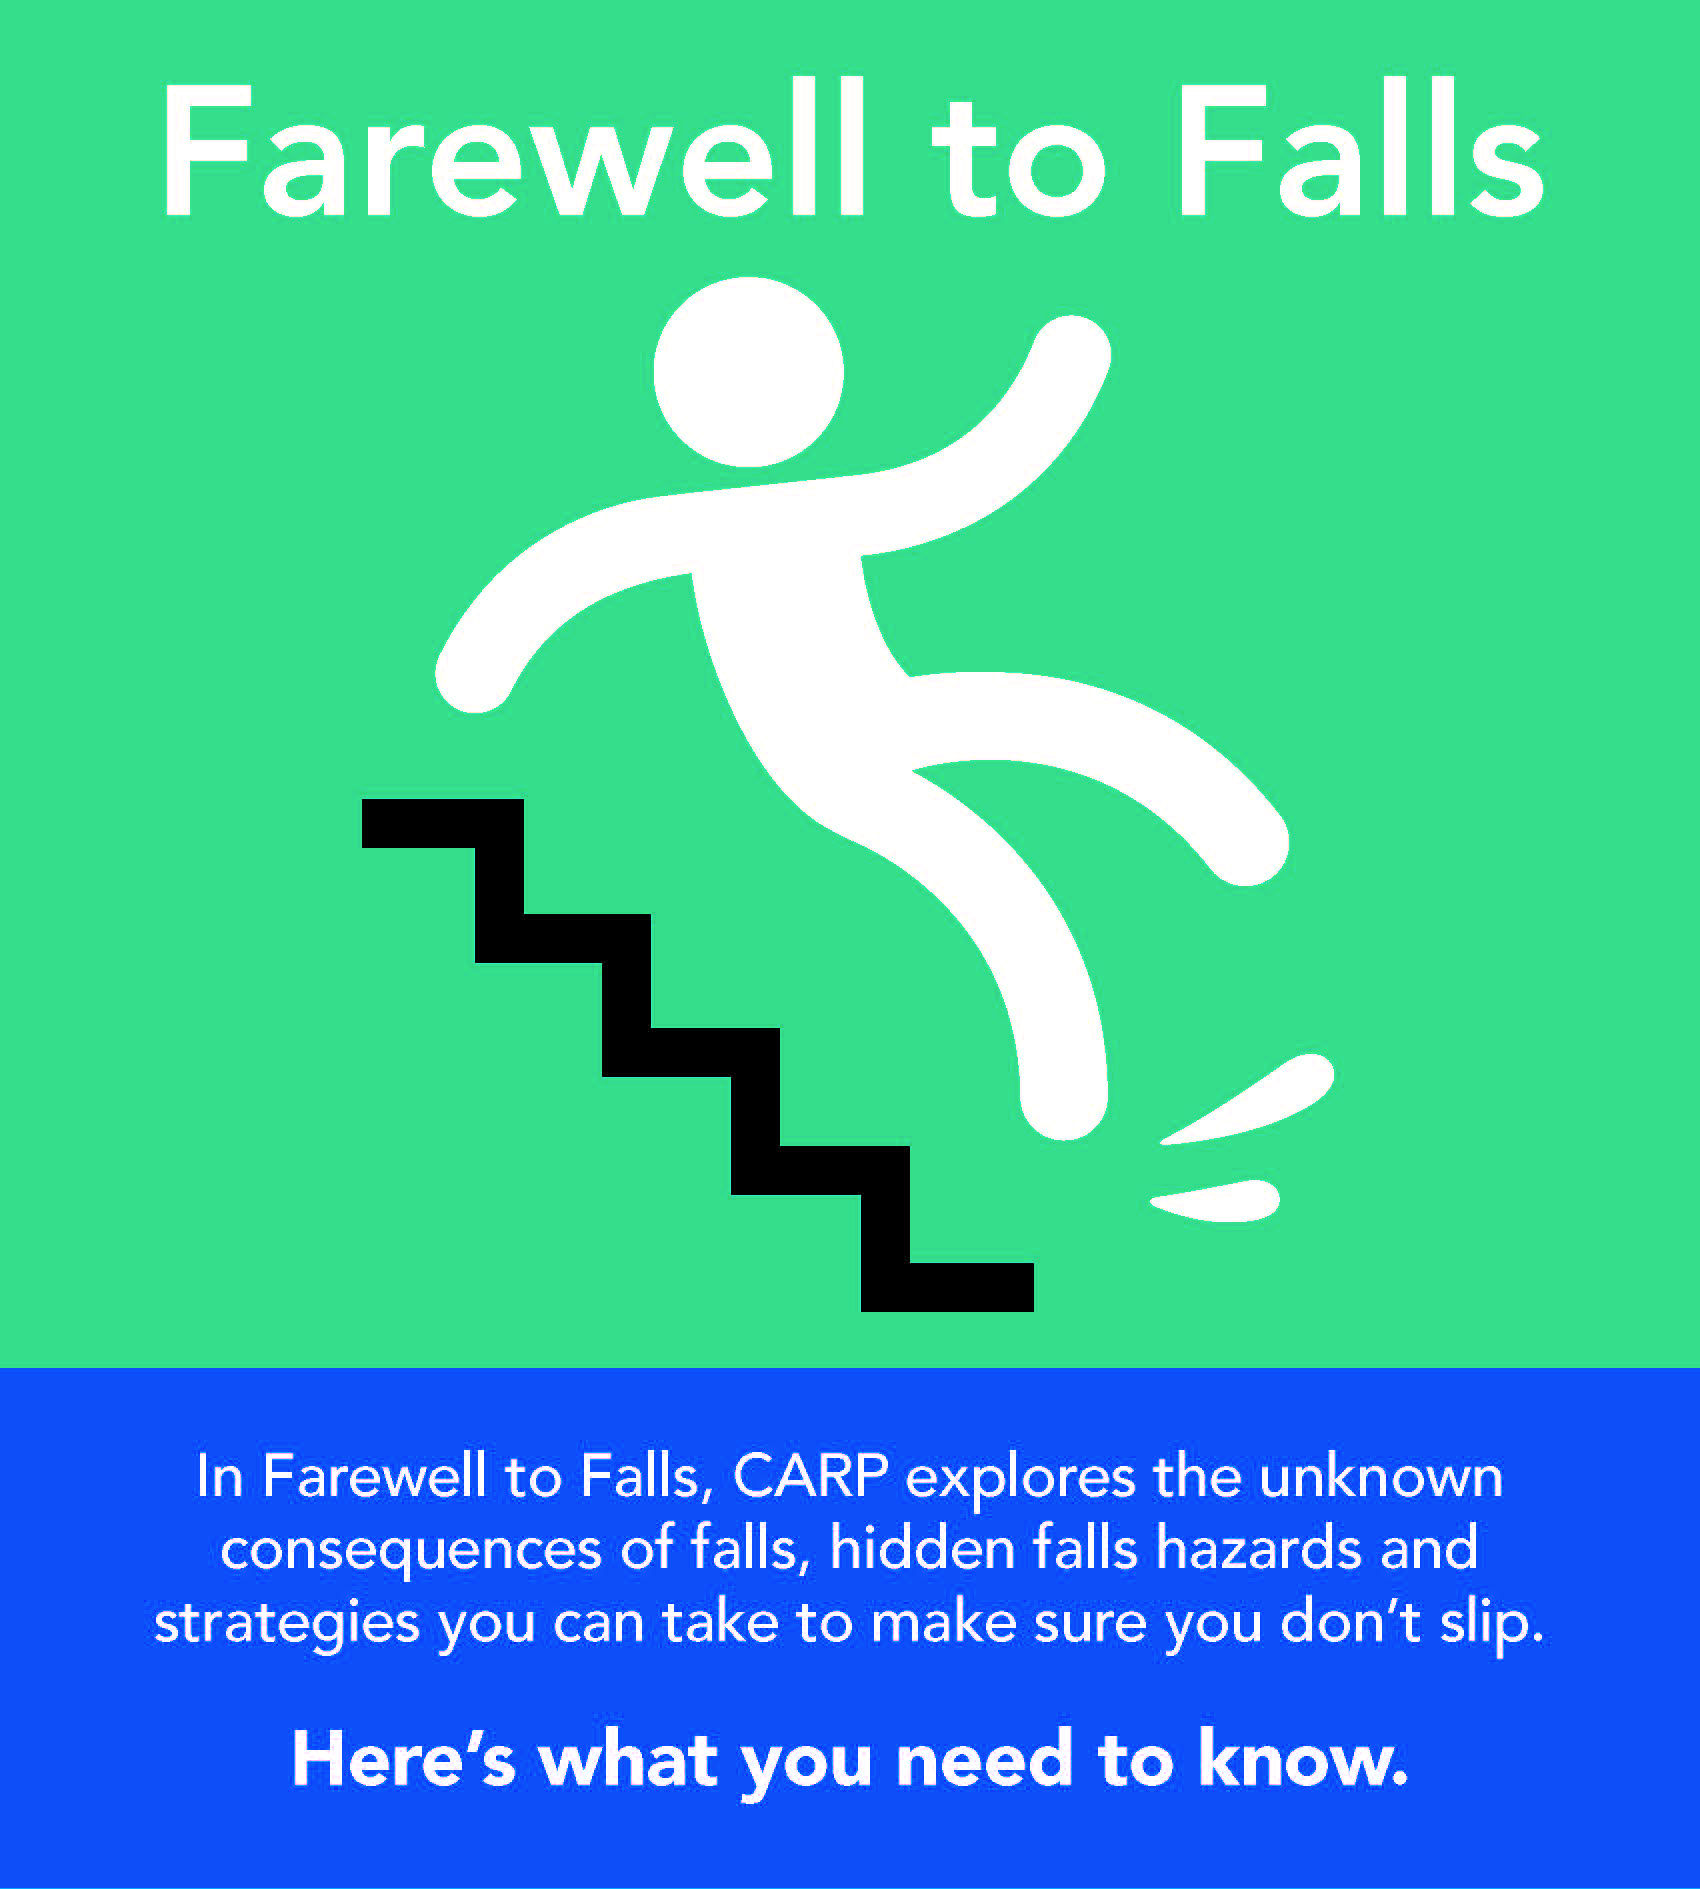 Farewell to Falls